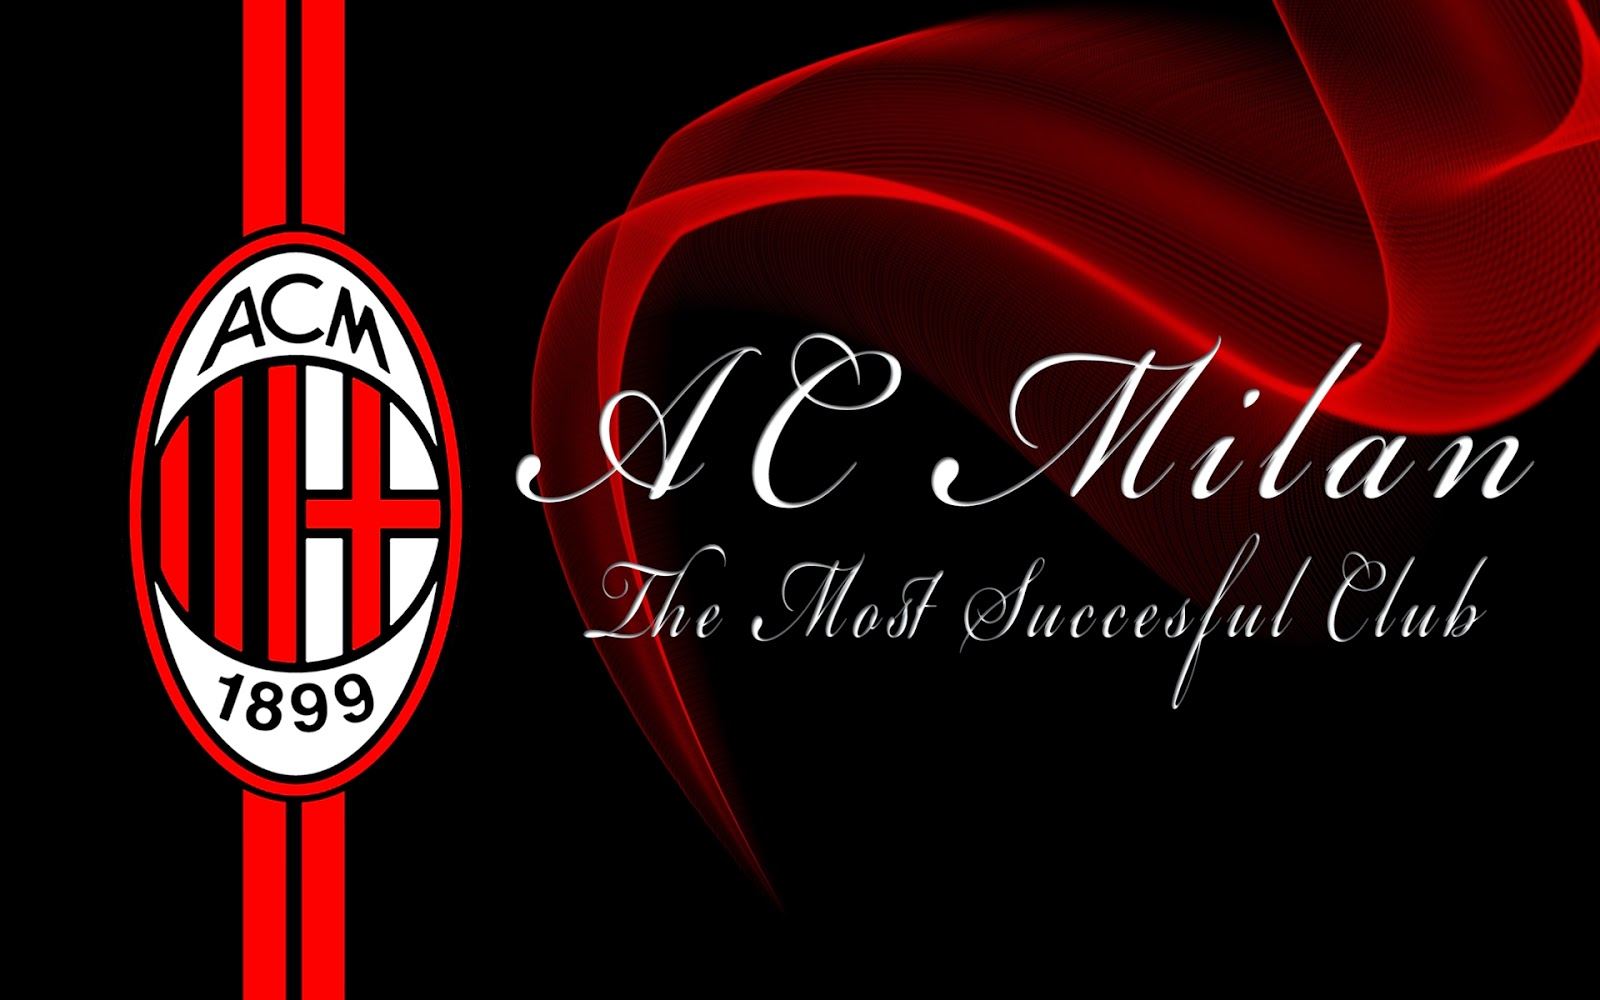 3D AC Milan Logo Wallpaper Android 10073 Wallpaper High Resolution 1600x1000